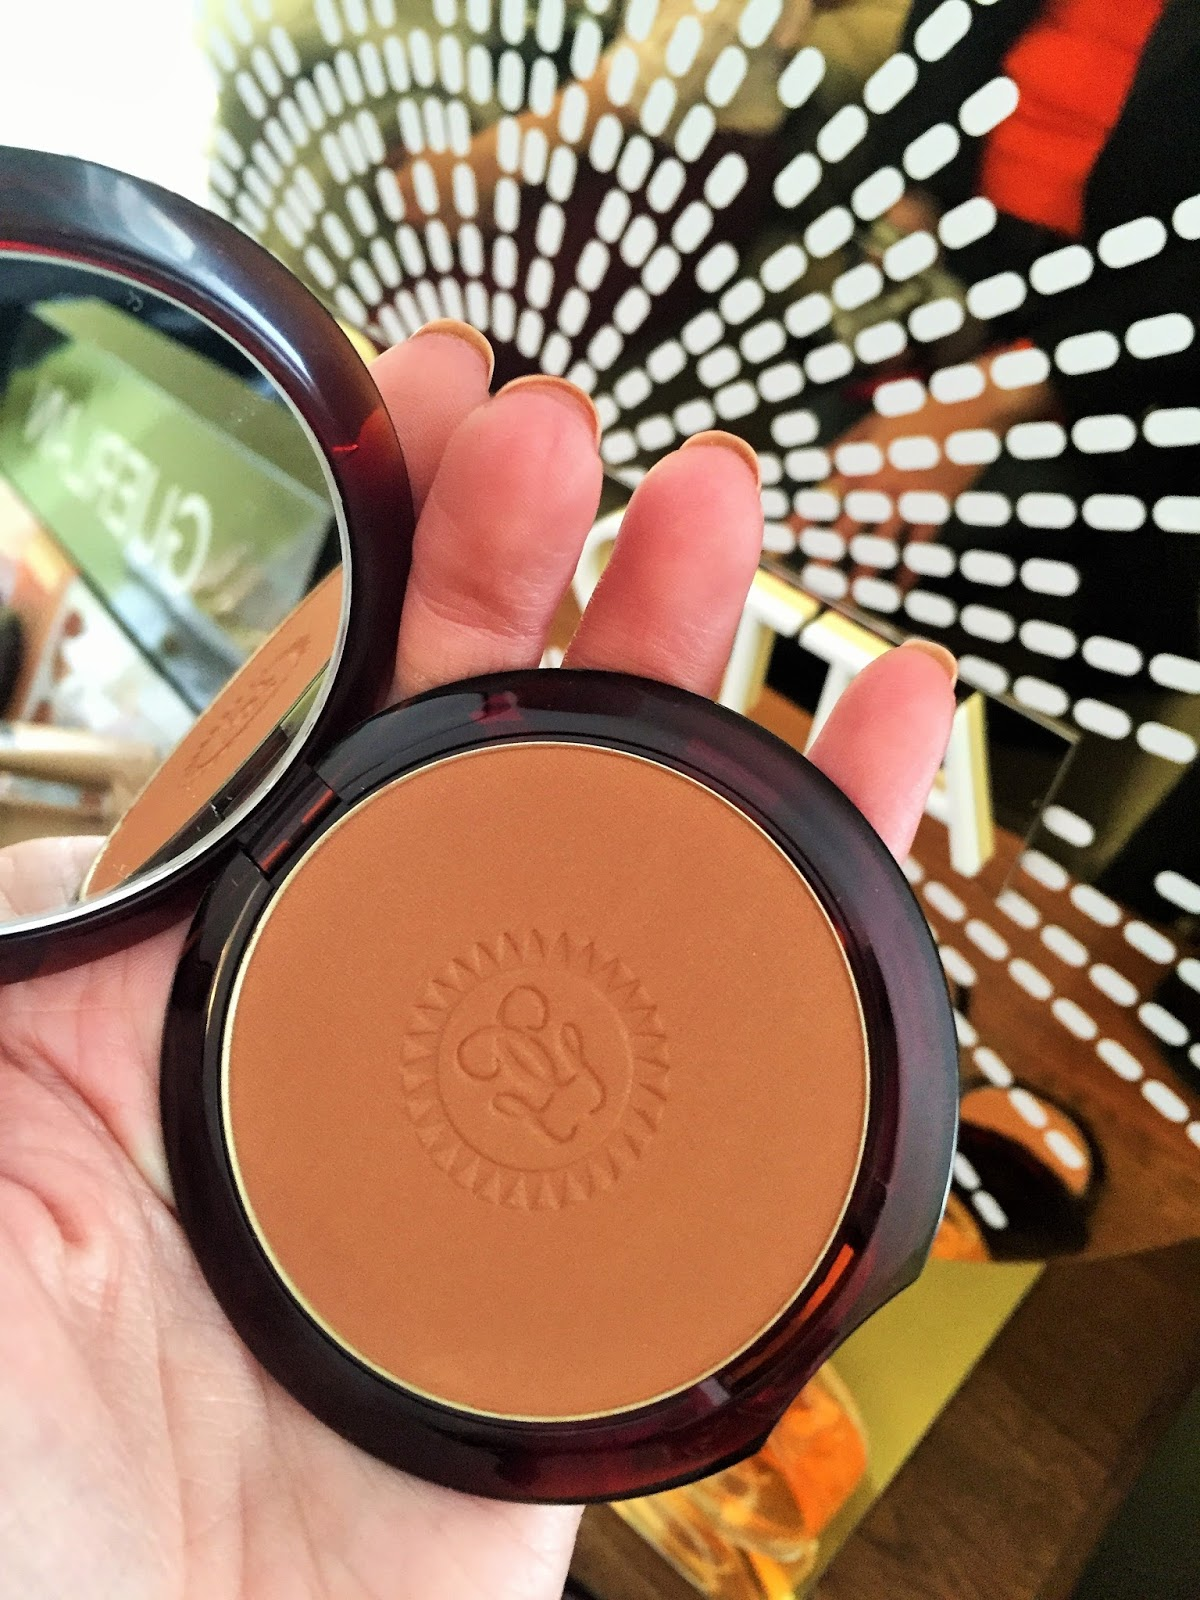 Debenhams Beauty Press Day - SS16 24 - Guerlain Terracotta Bronzer in 05